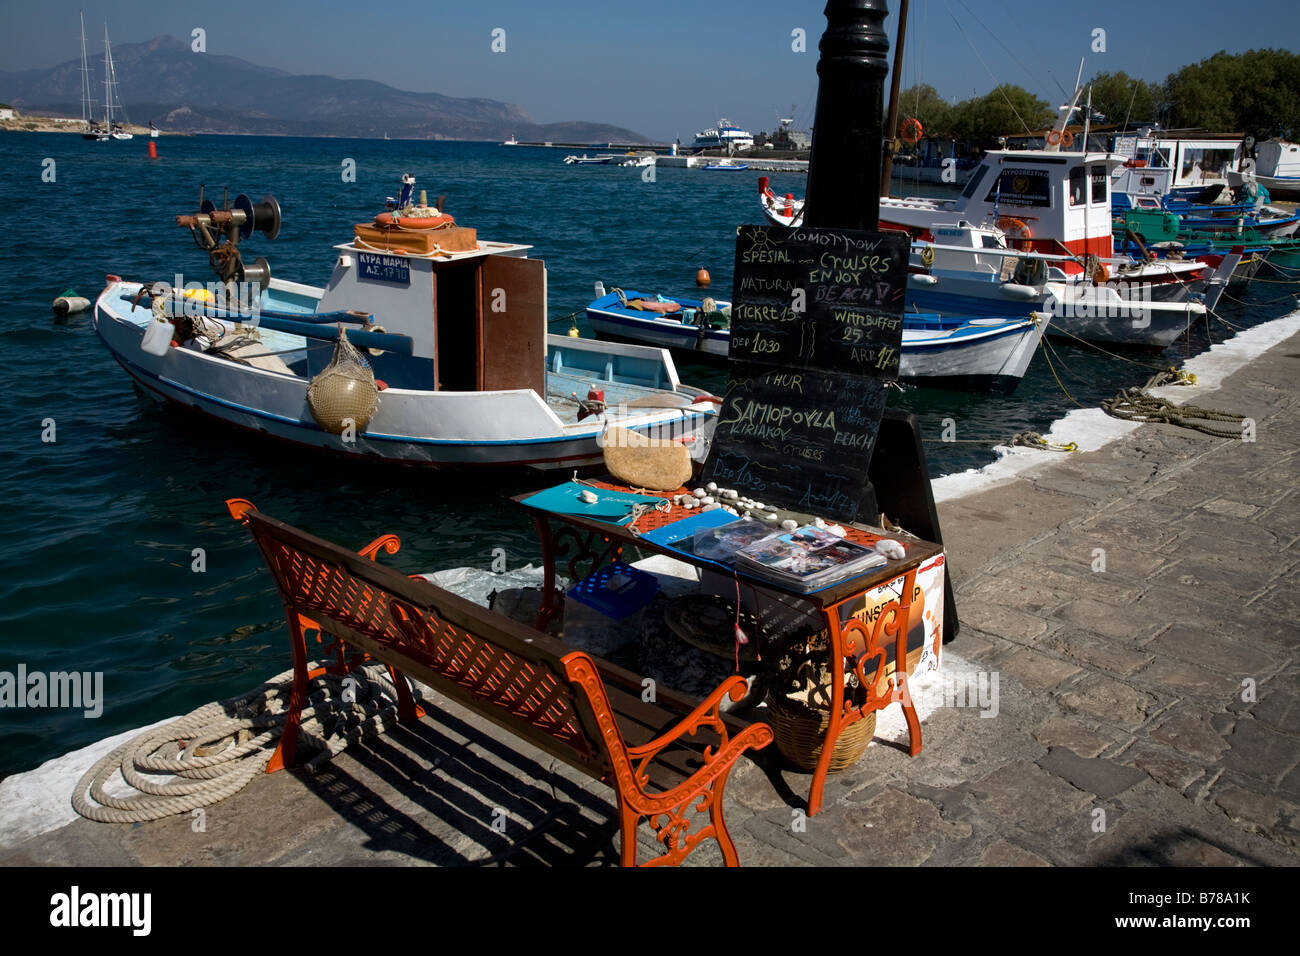 Boats In Harbour Pythagorion Samos Greece Stock Photo Alamy